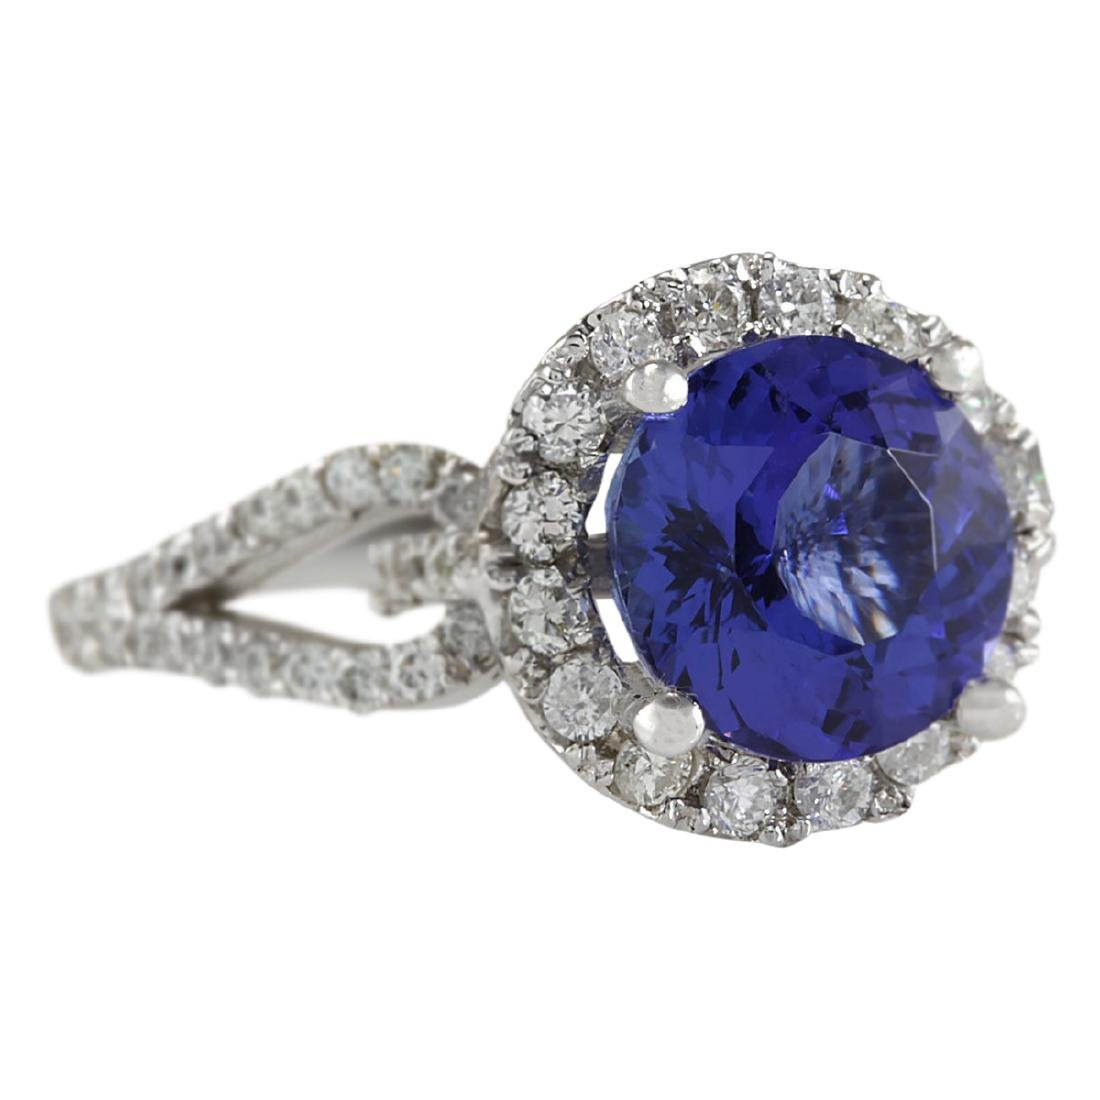 3.49 CTW Natural Blue Tanzanite And Diamond Ring In18K - 2